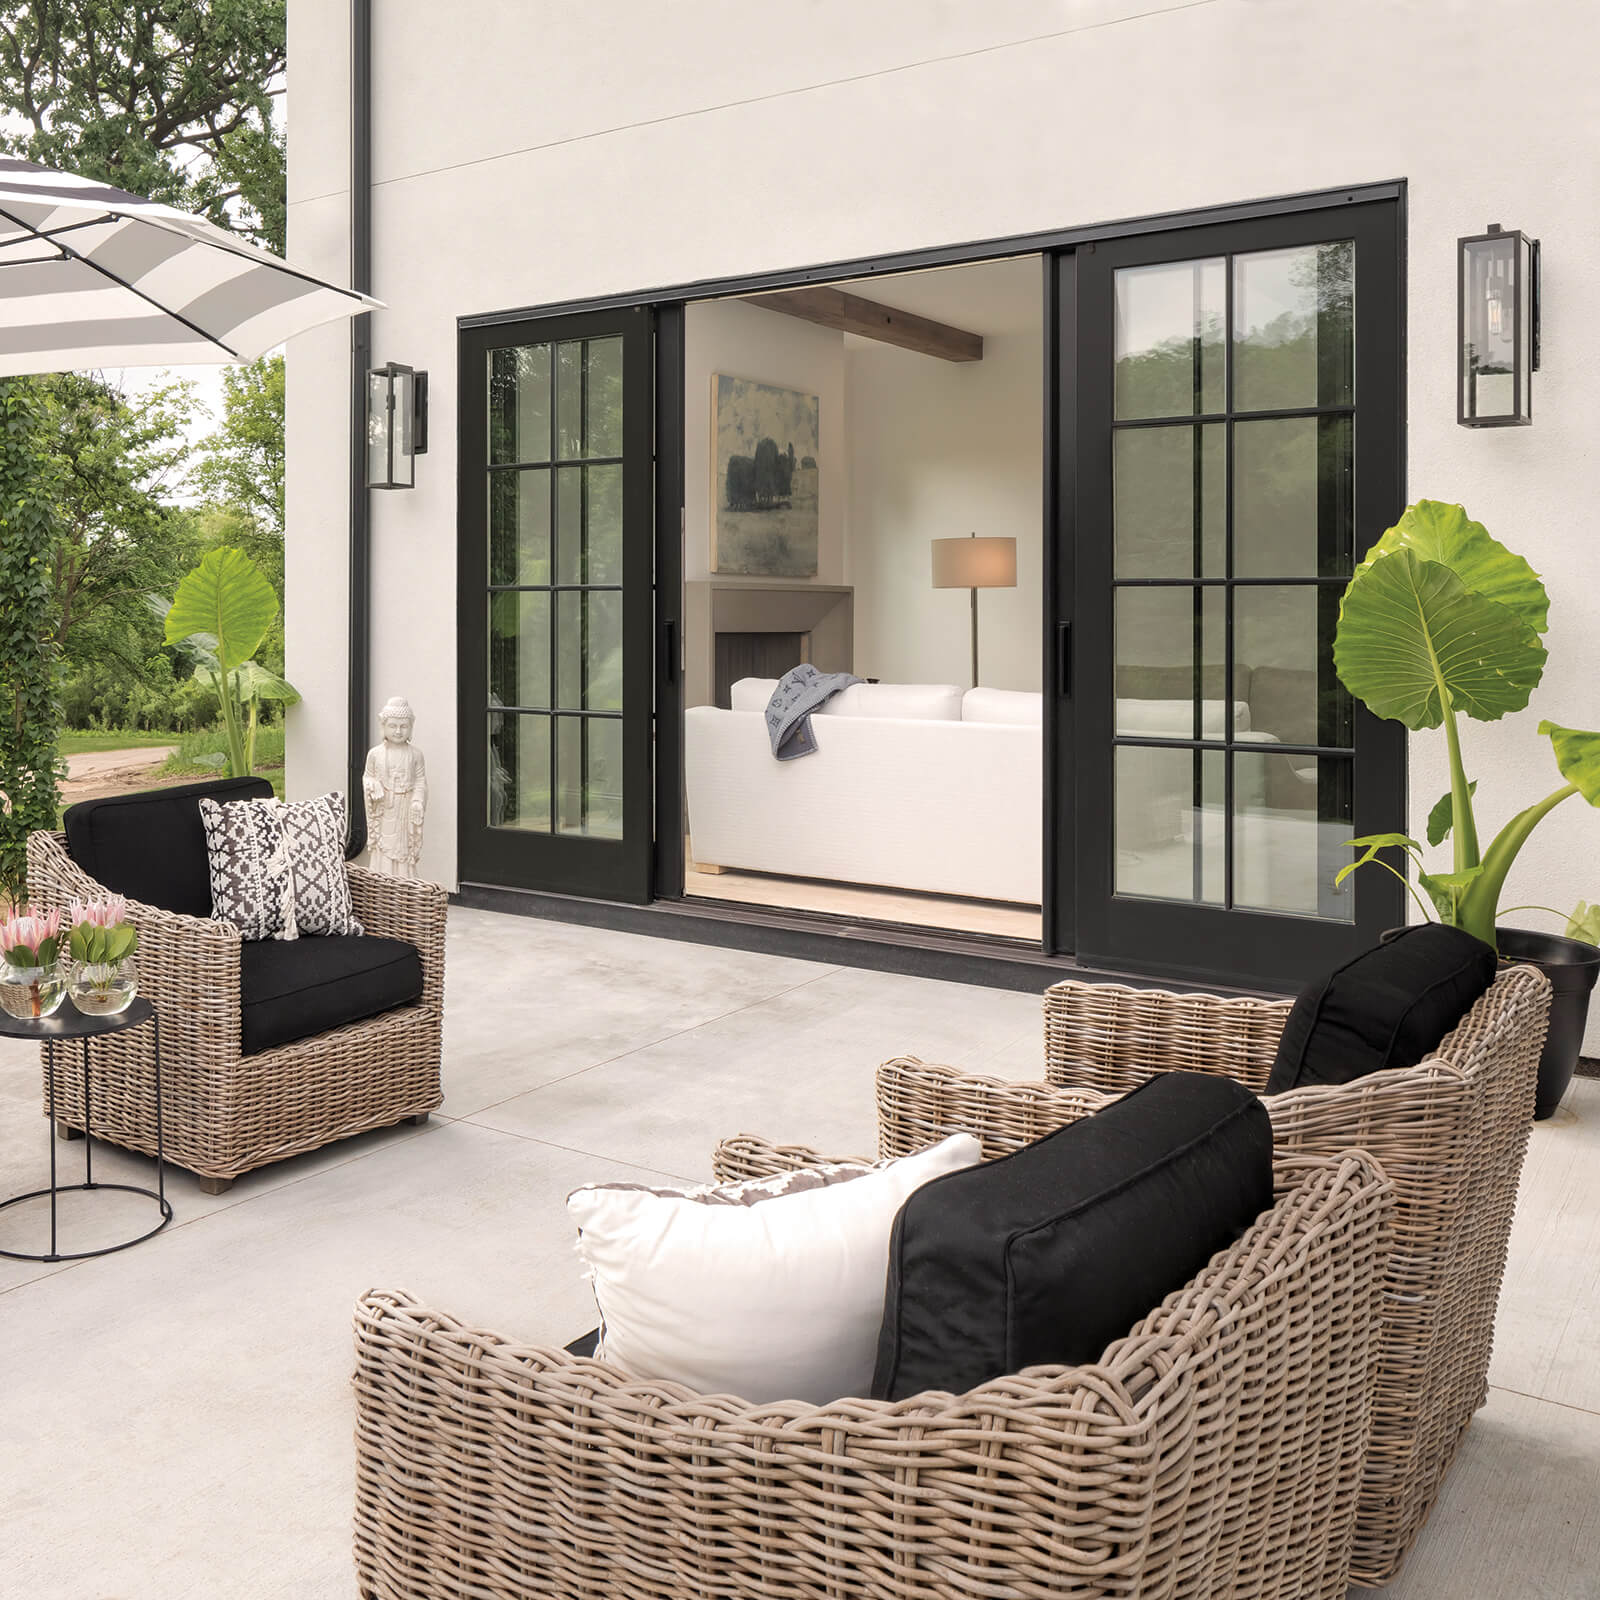 Patio entertainment area with open Marvin Signature Ultimate Sliding French Door